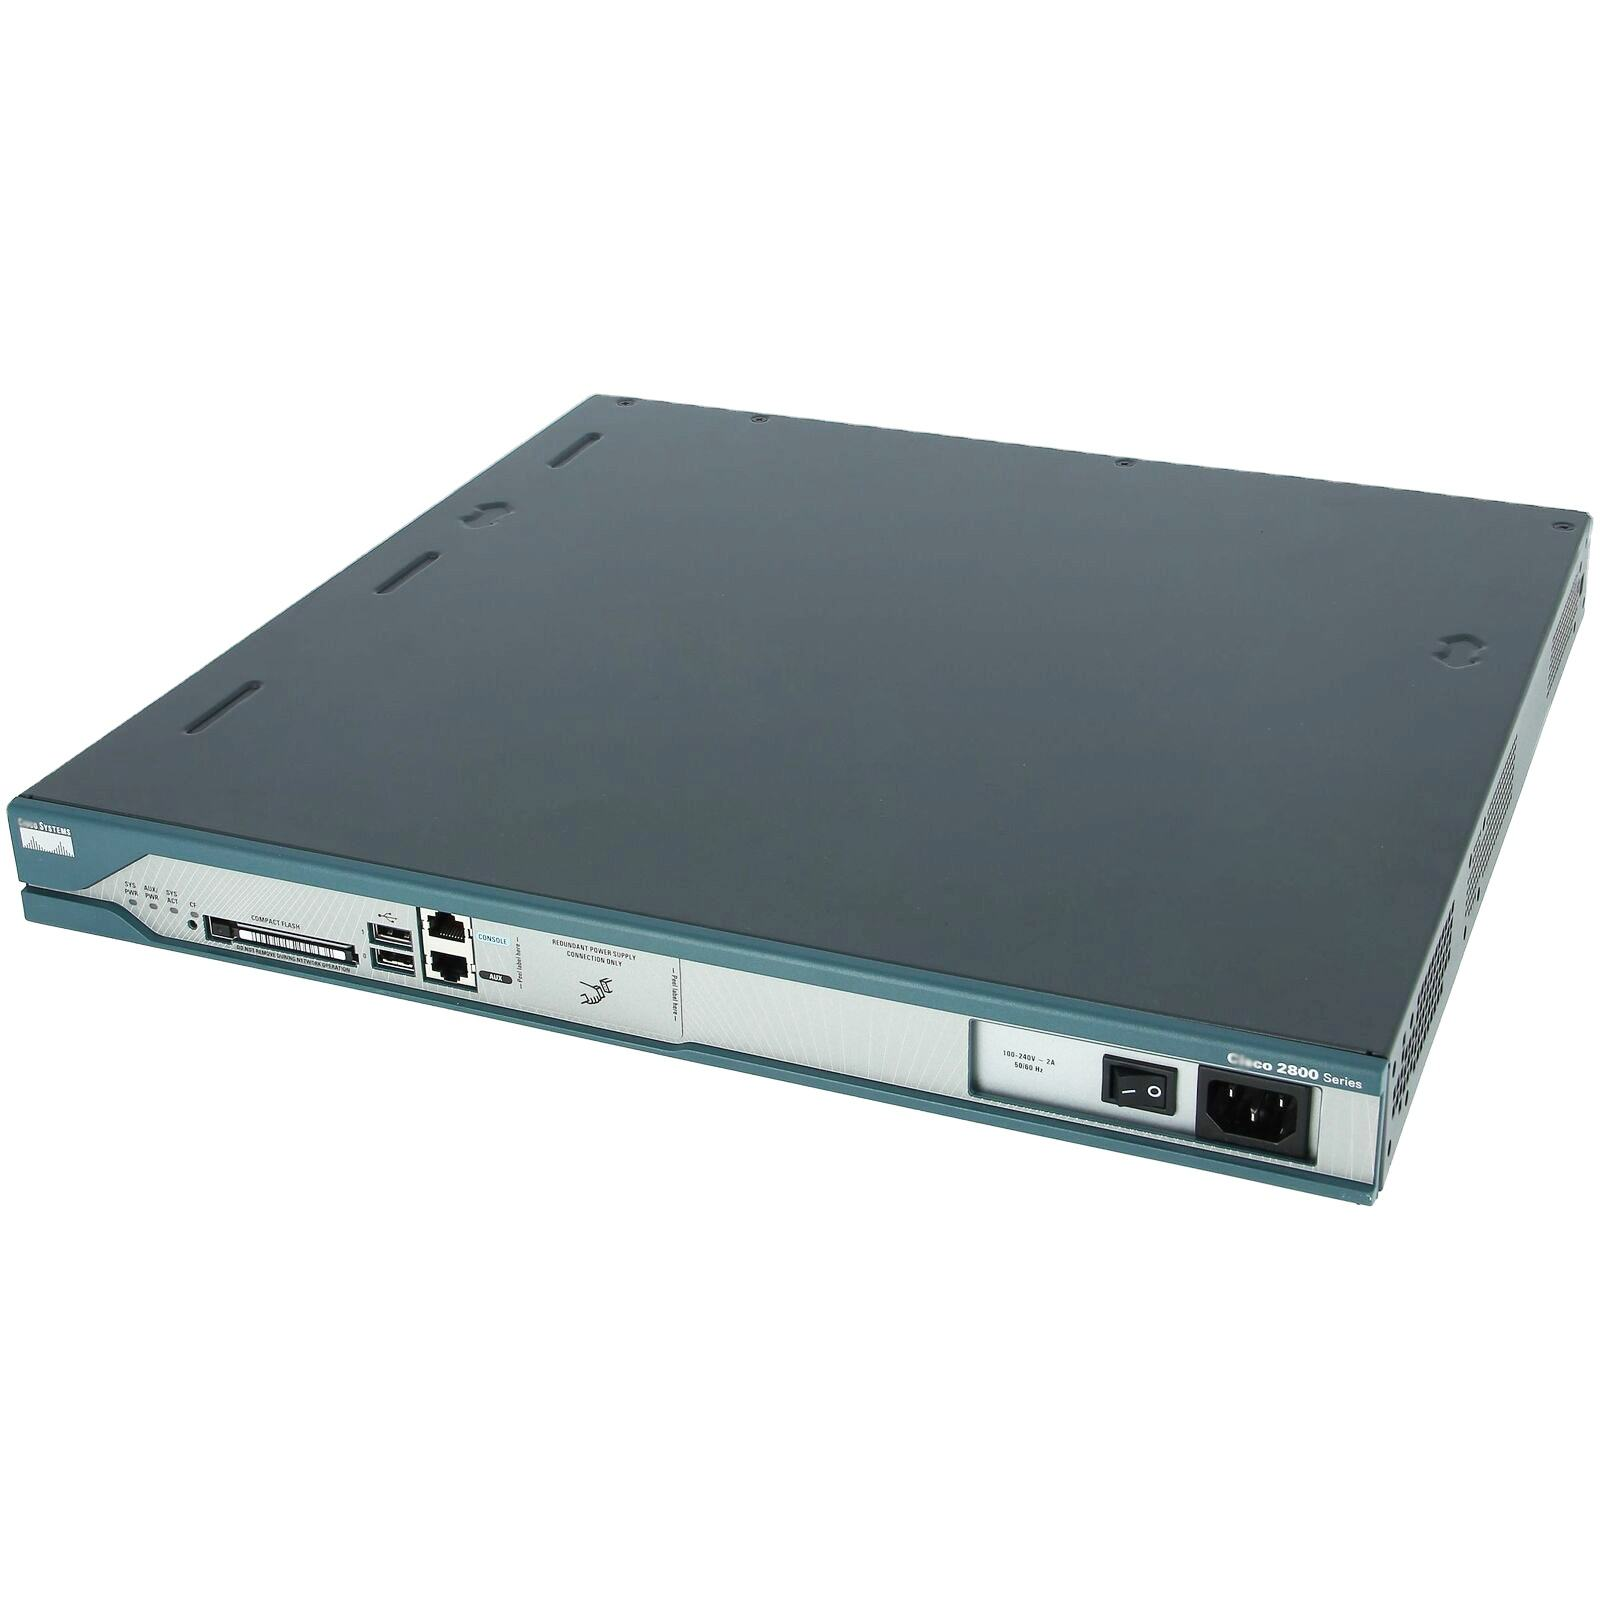 2811 Router Integrated services Router 2 WAN porta Ethernet enterprise Router